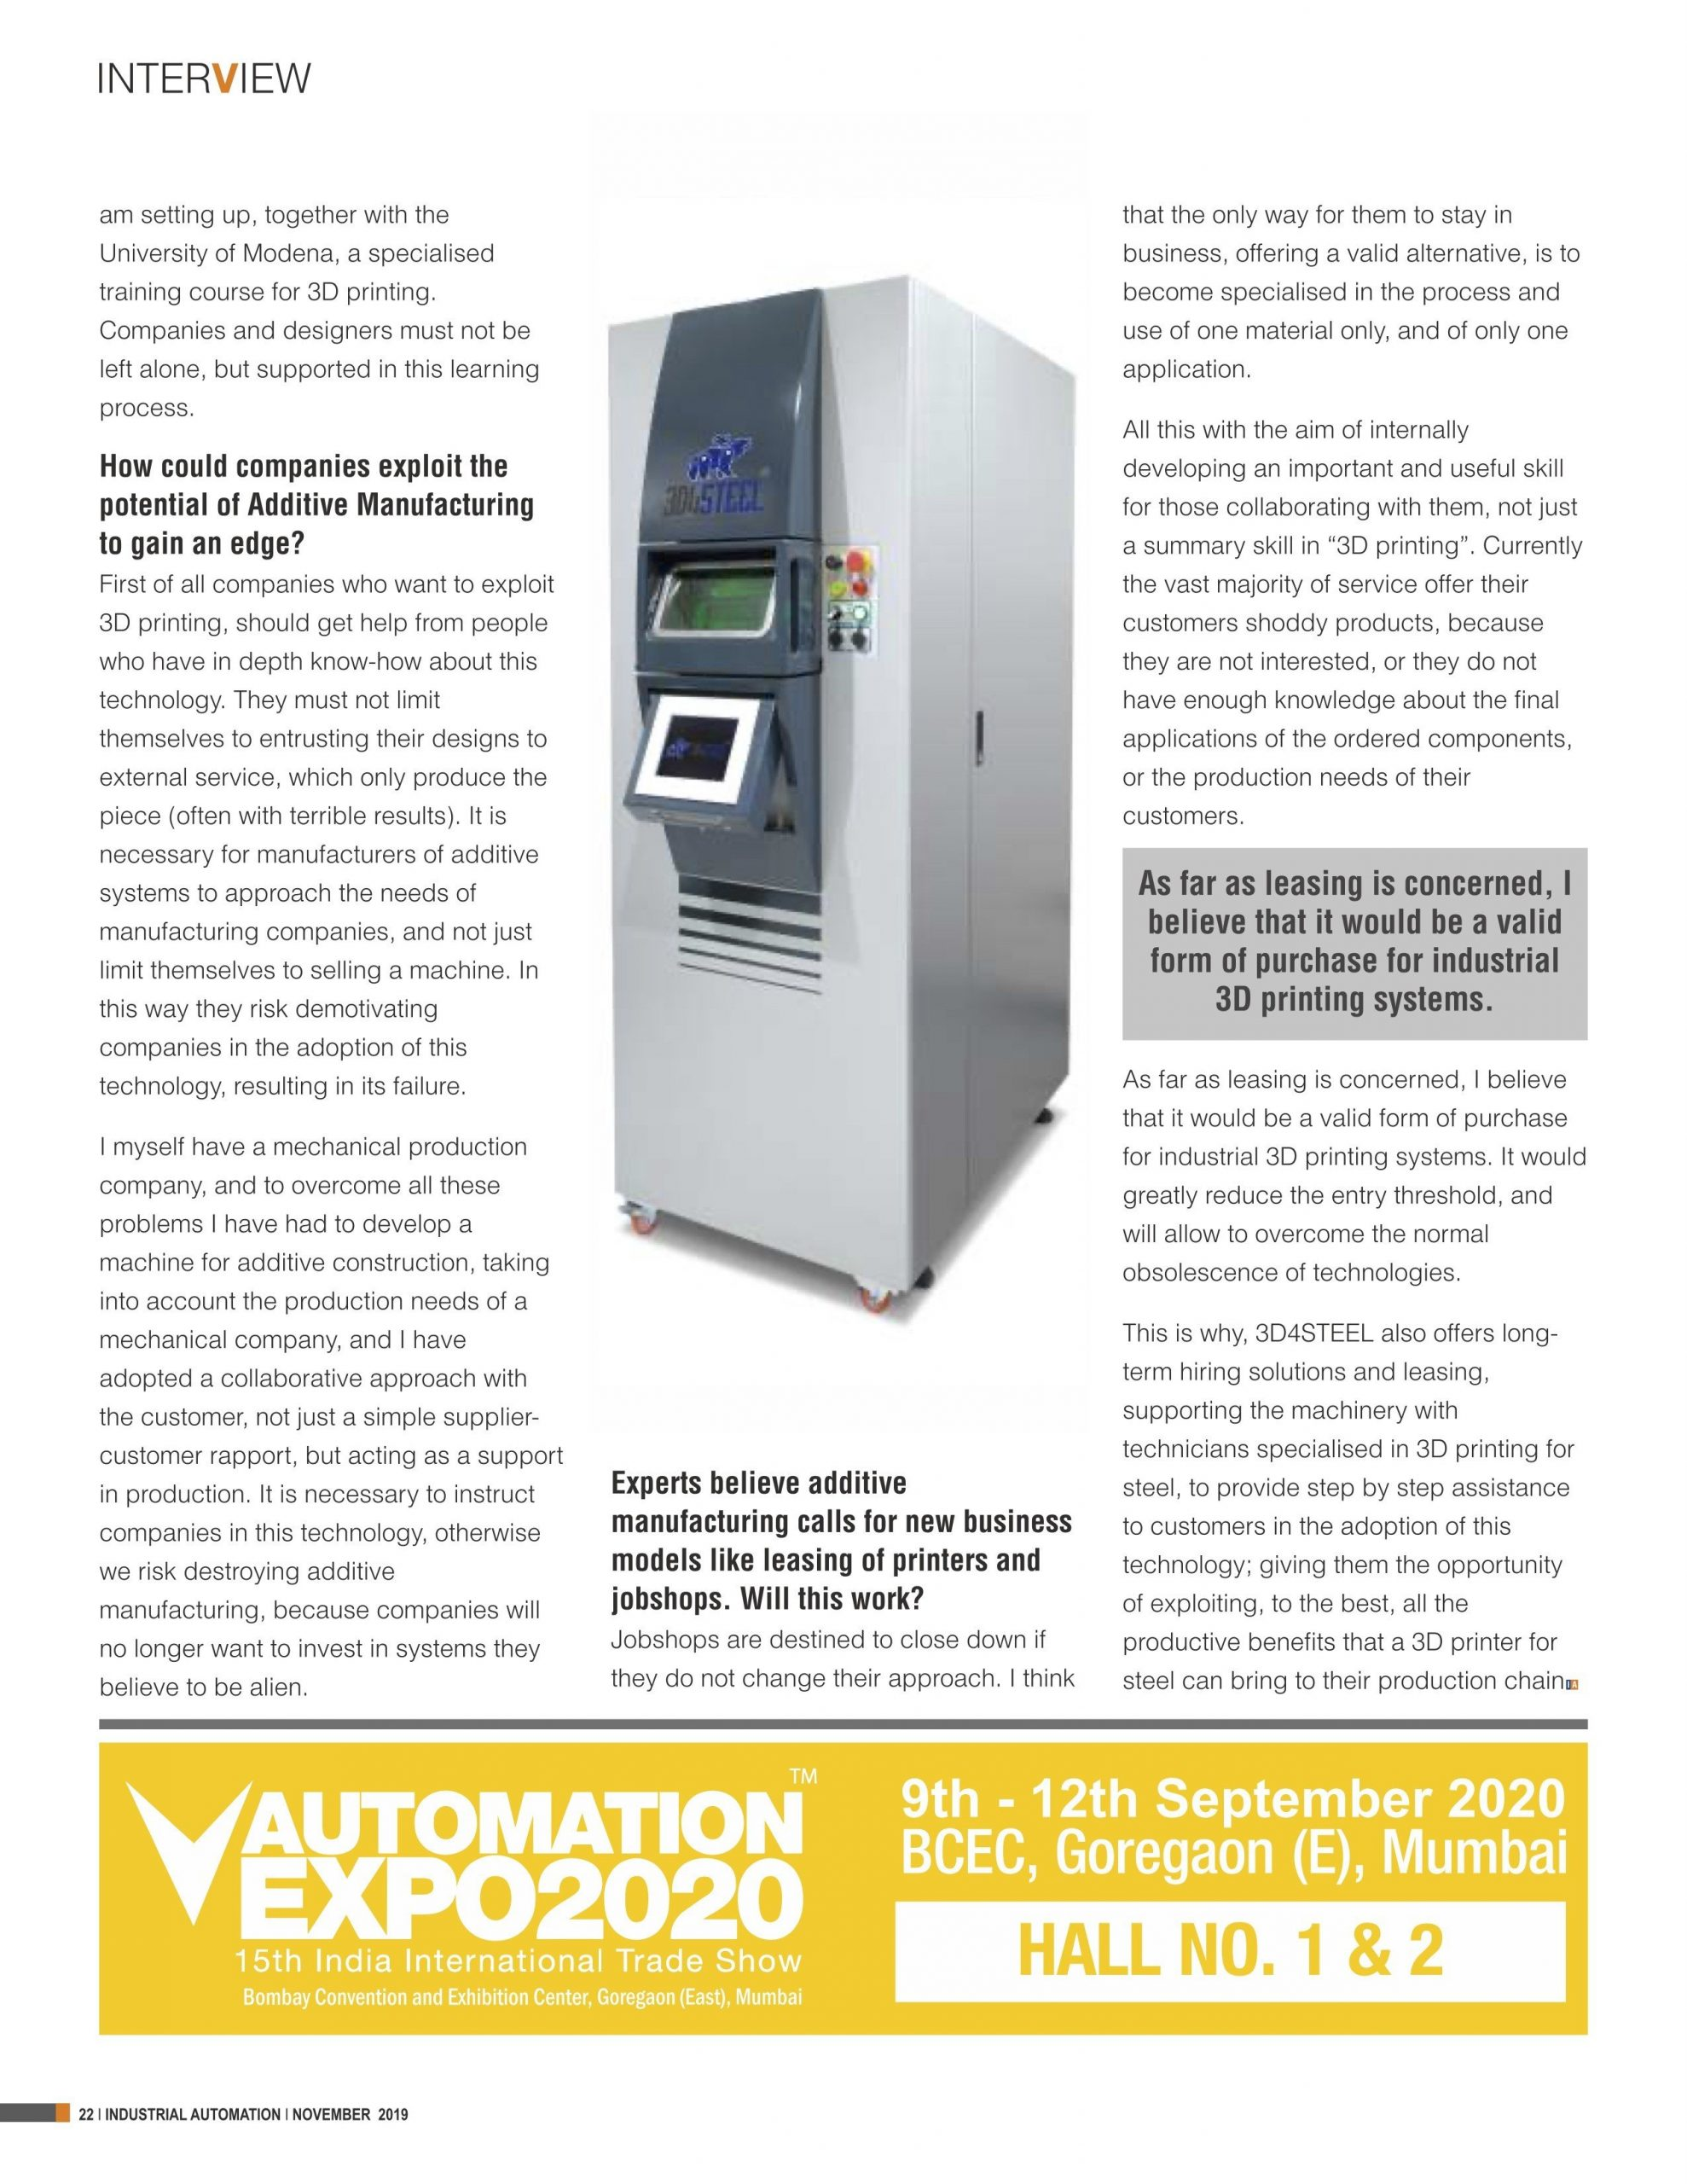 A 18 'Solutions for industrial scale 3D printing still remain too remote' part 2